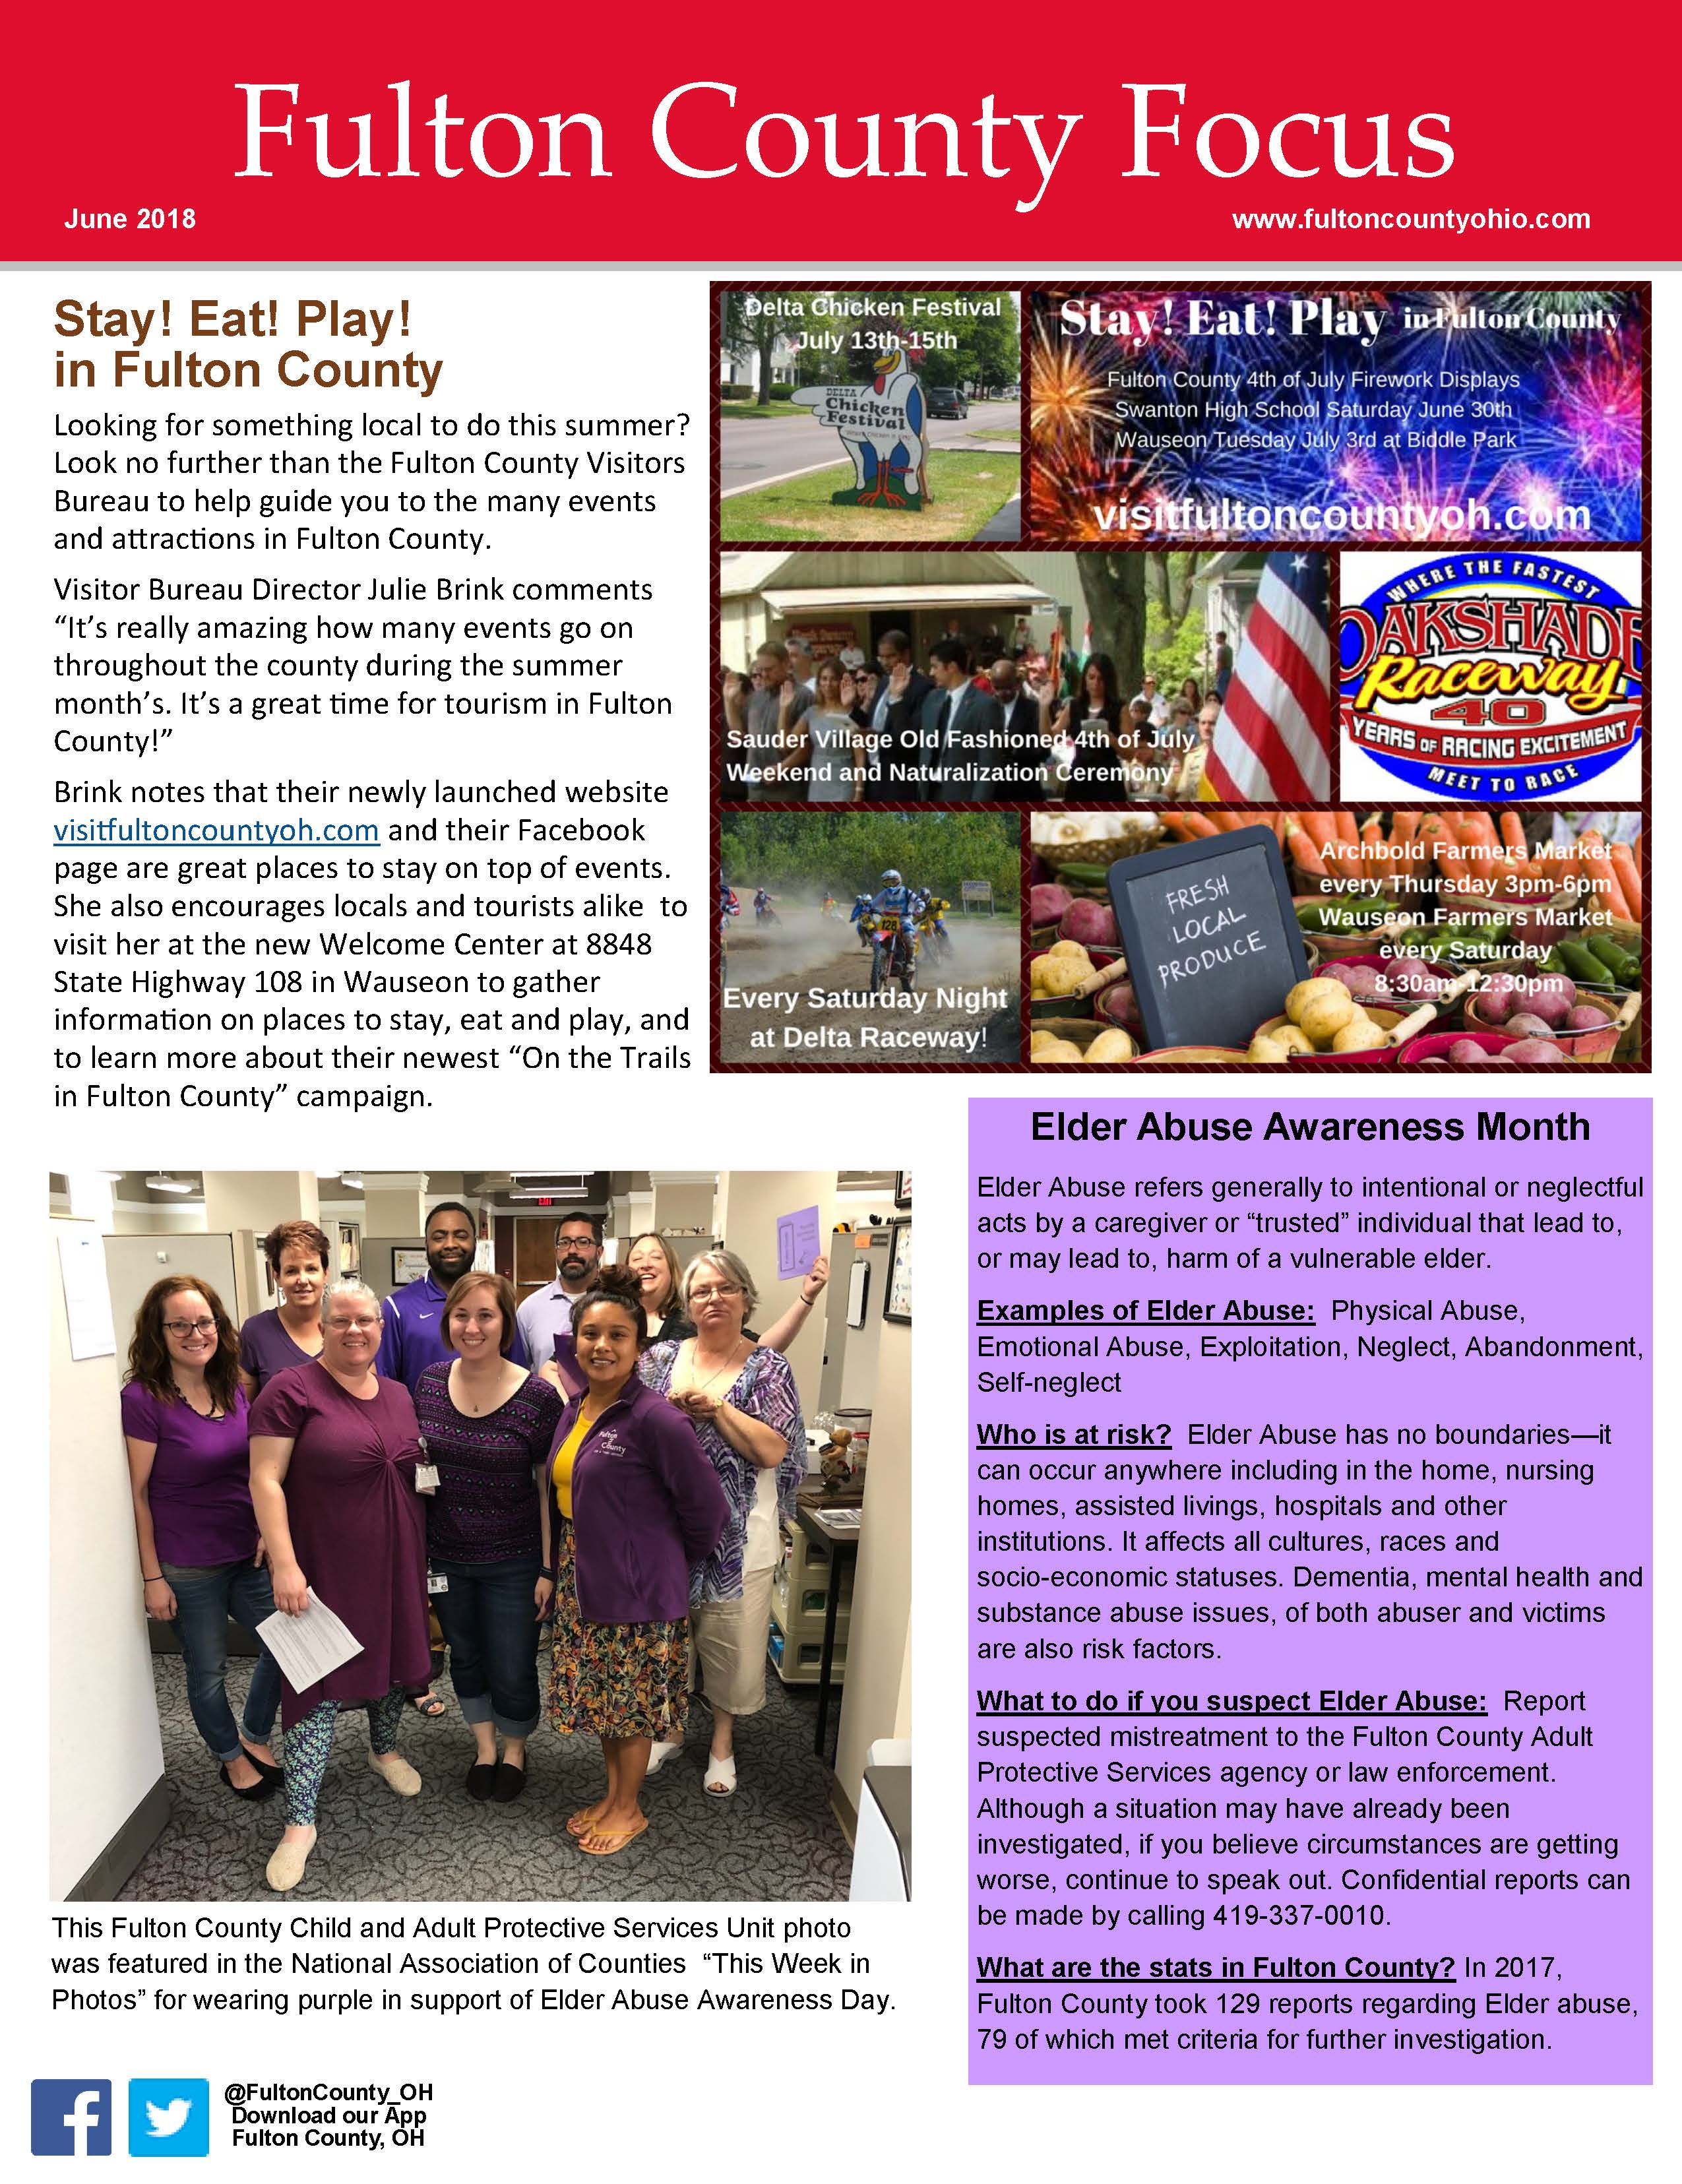 Fulton County Focus June 2018.pub